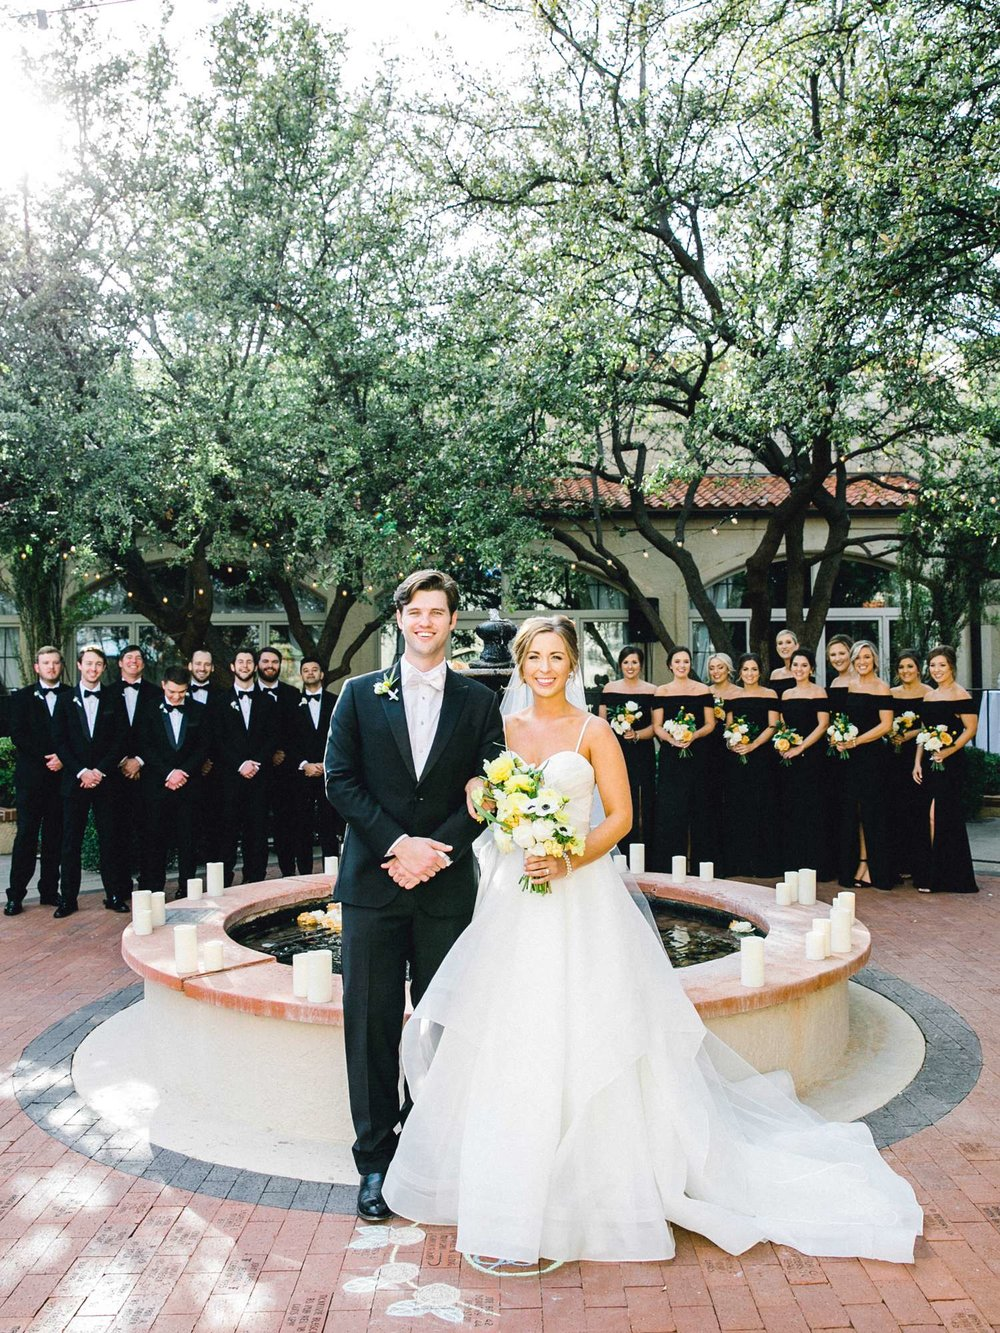 MARLEE+LLOYD+MORGAN+ALLEEJ+TEXAS+TECH+MERKET+ALUMNI+WEDDINGS+LUBBOCK+WEST+TABLE+CLASSIC+SPAIN_0096.jpg